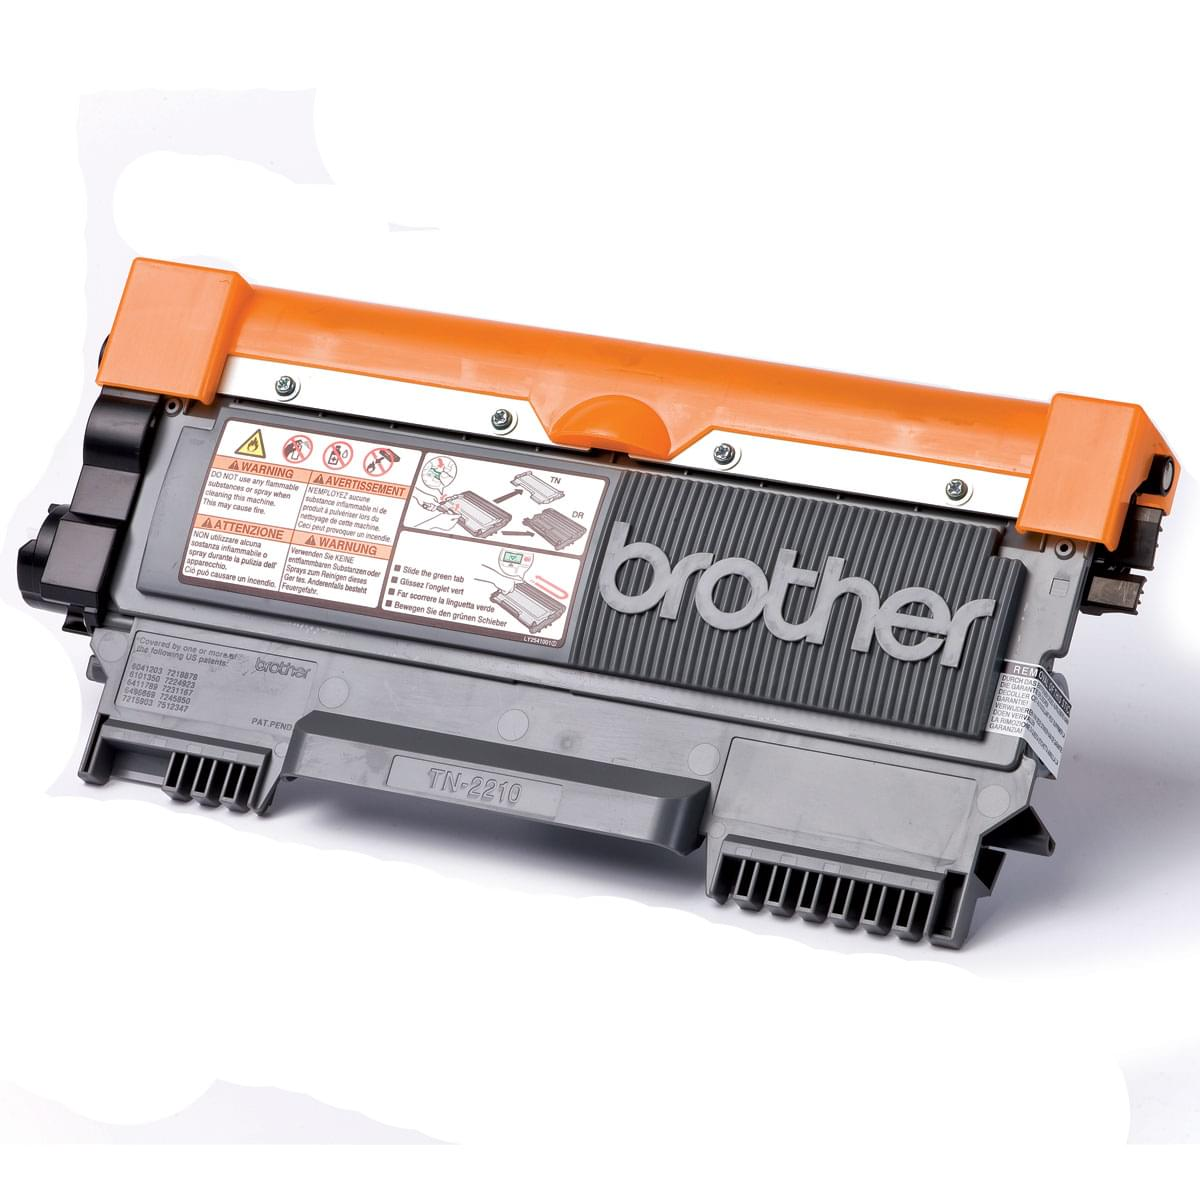 Toner Noir 1200p - TN-2210 pour imprimante Laser Brother - 0